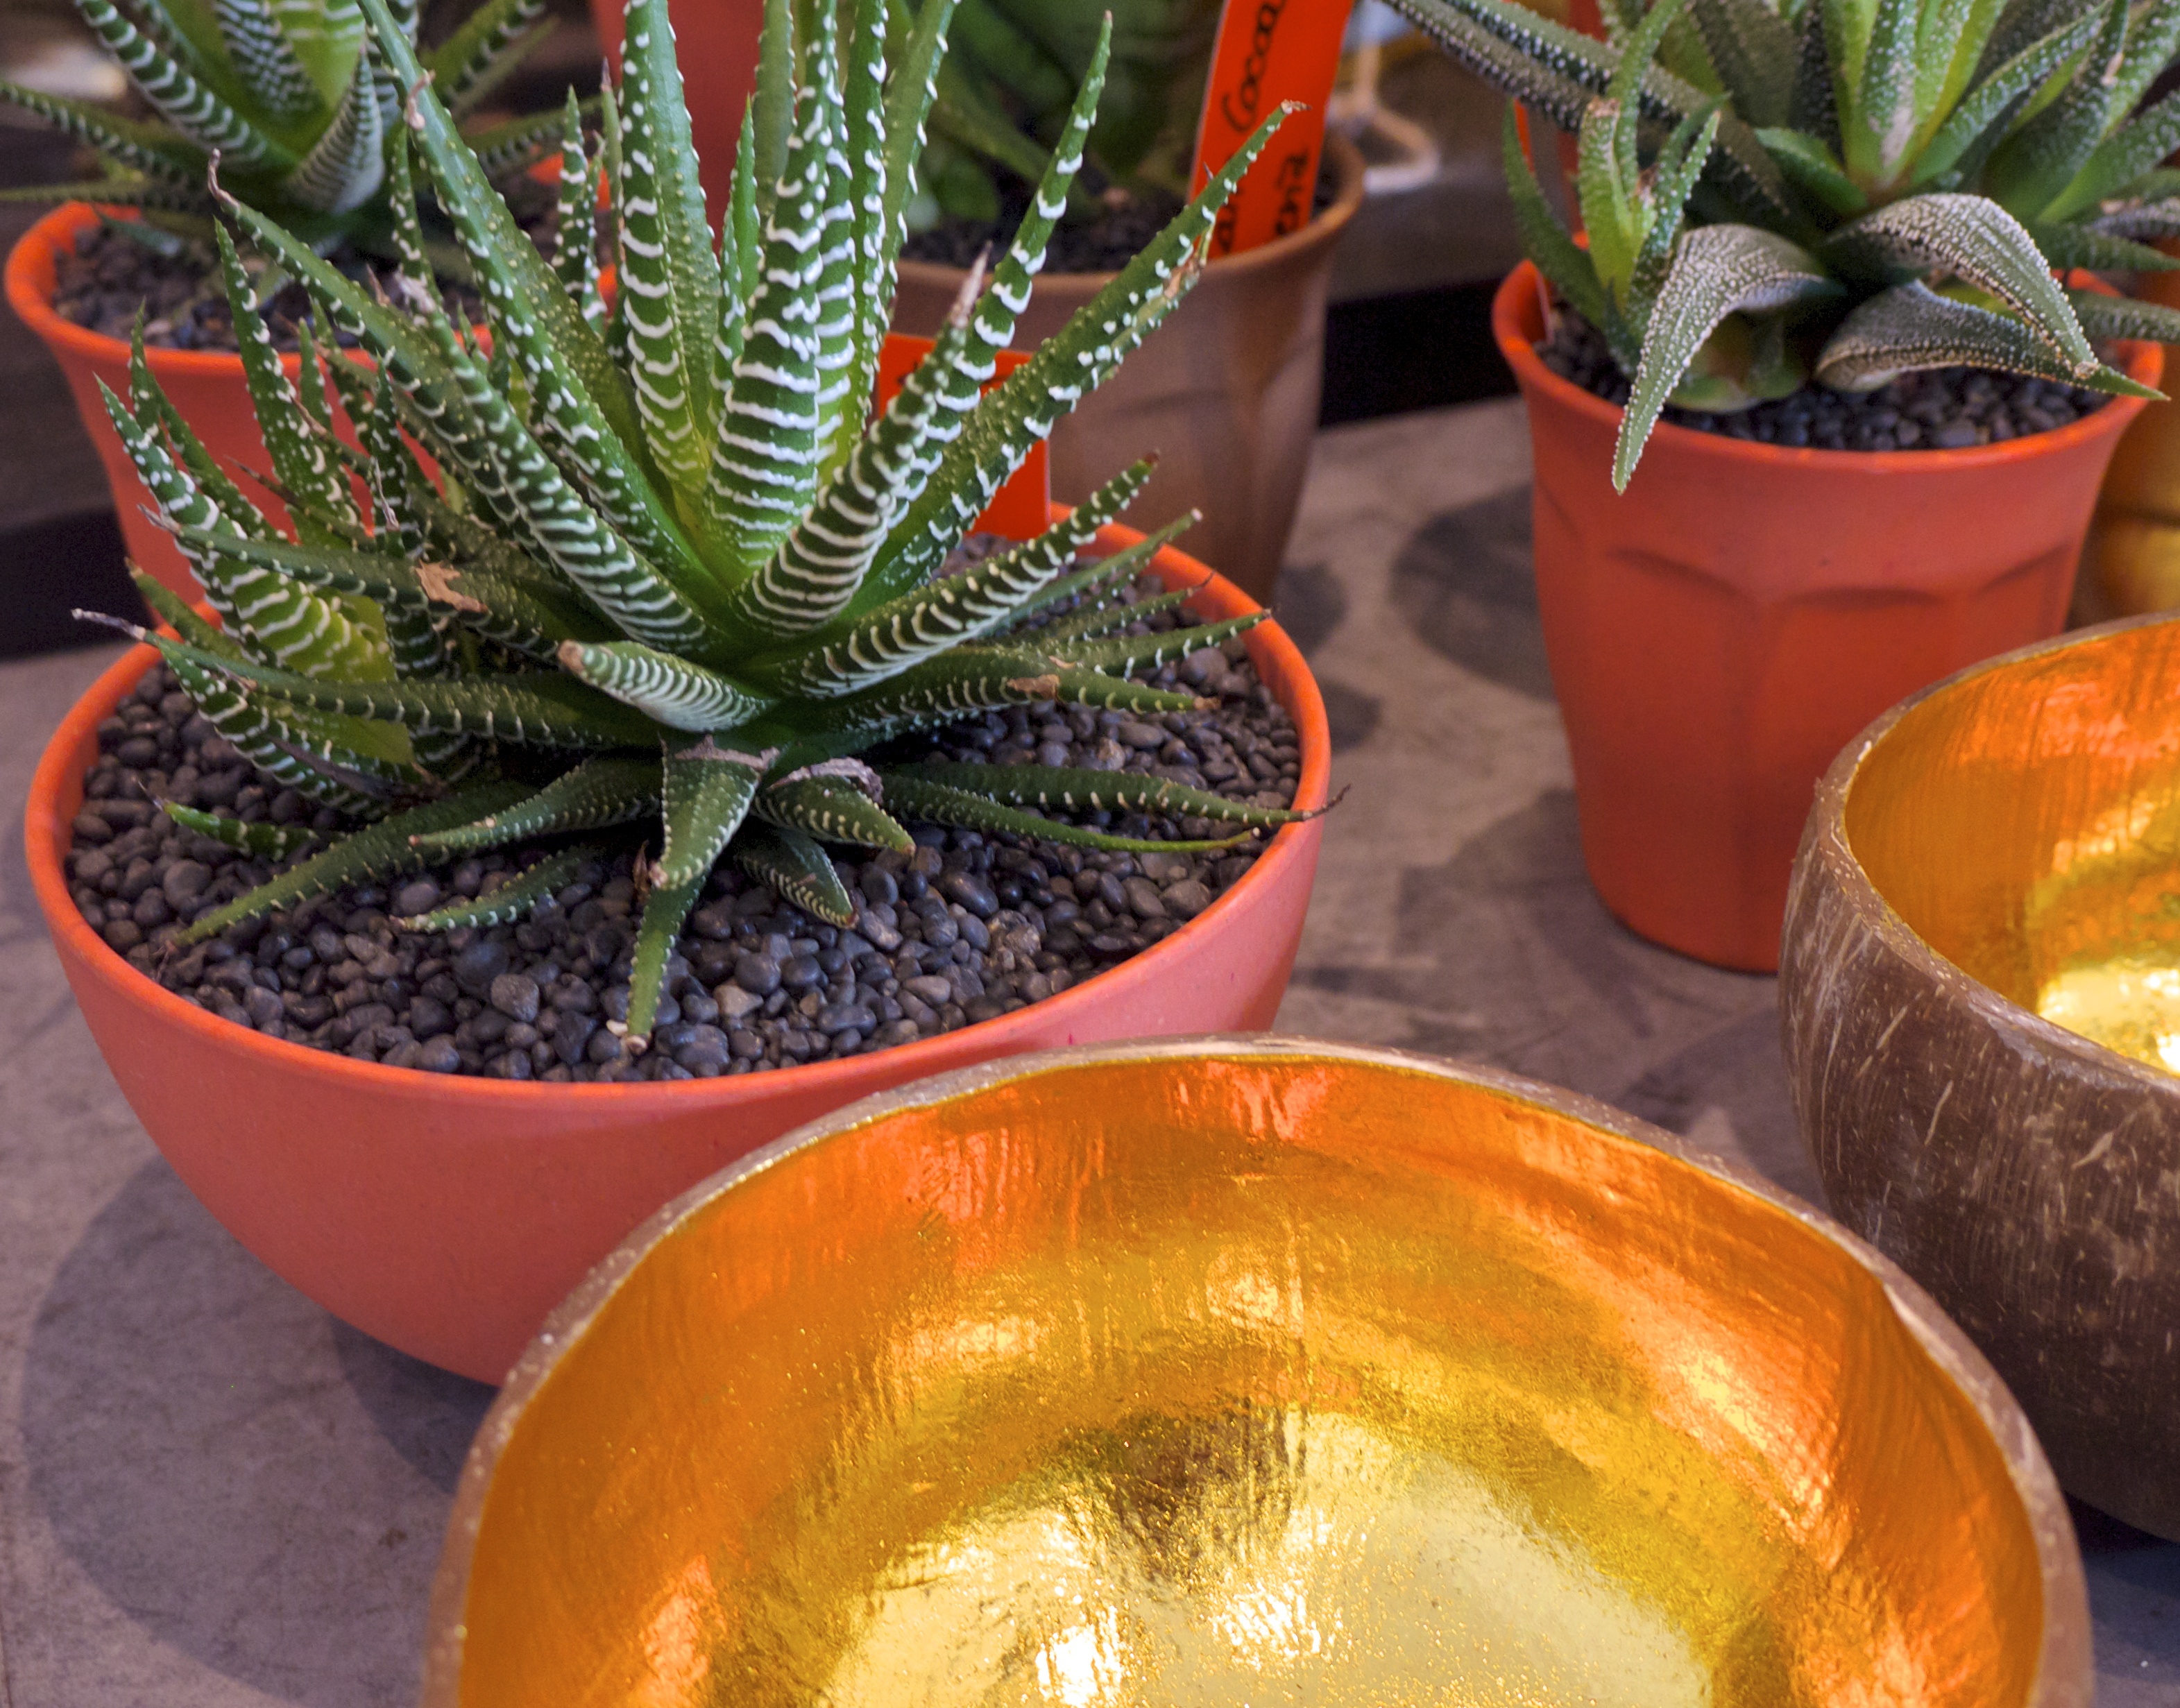 Garden Life Redfern - Plants in Orange and Gold Pots